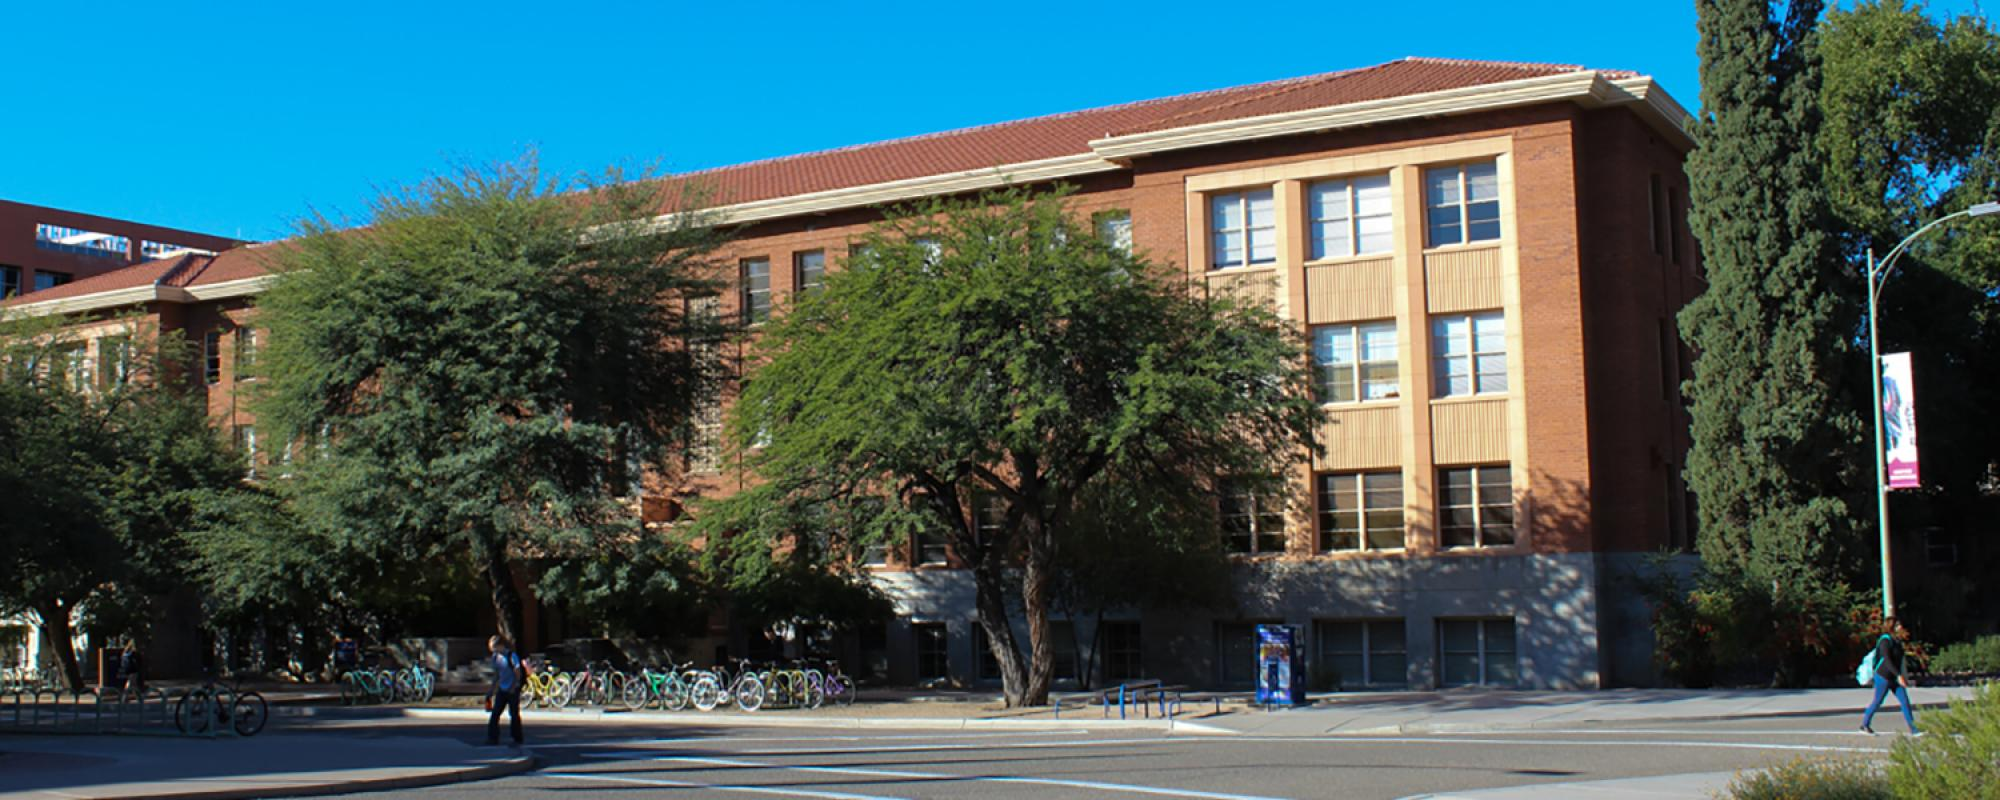 Photo of Social Sciences building